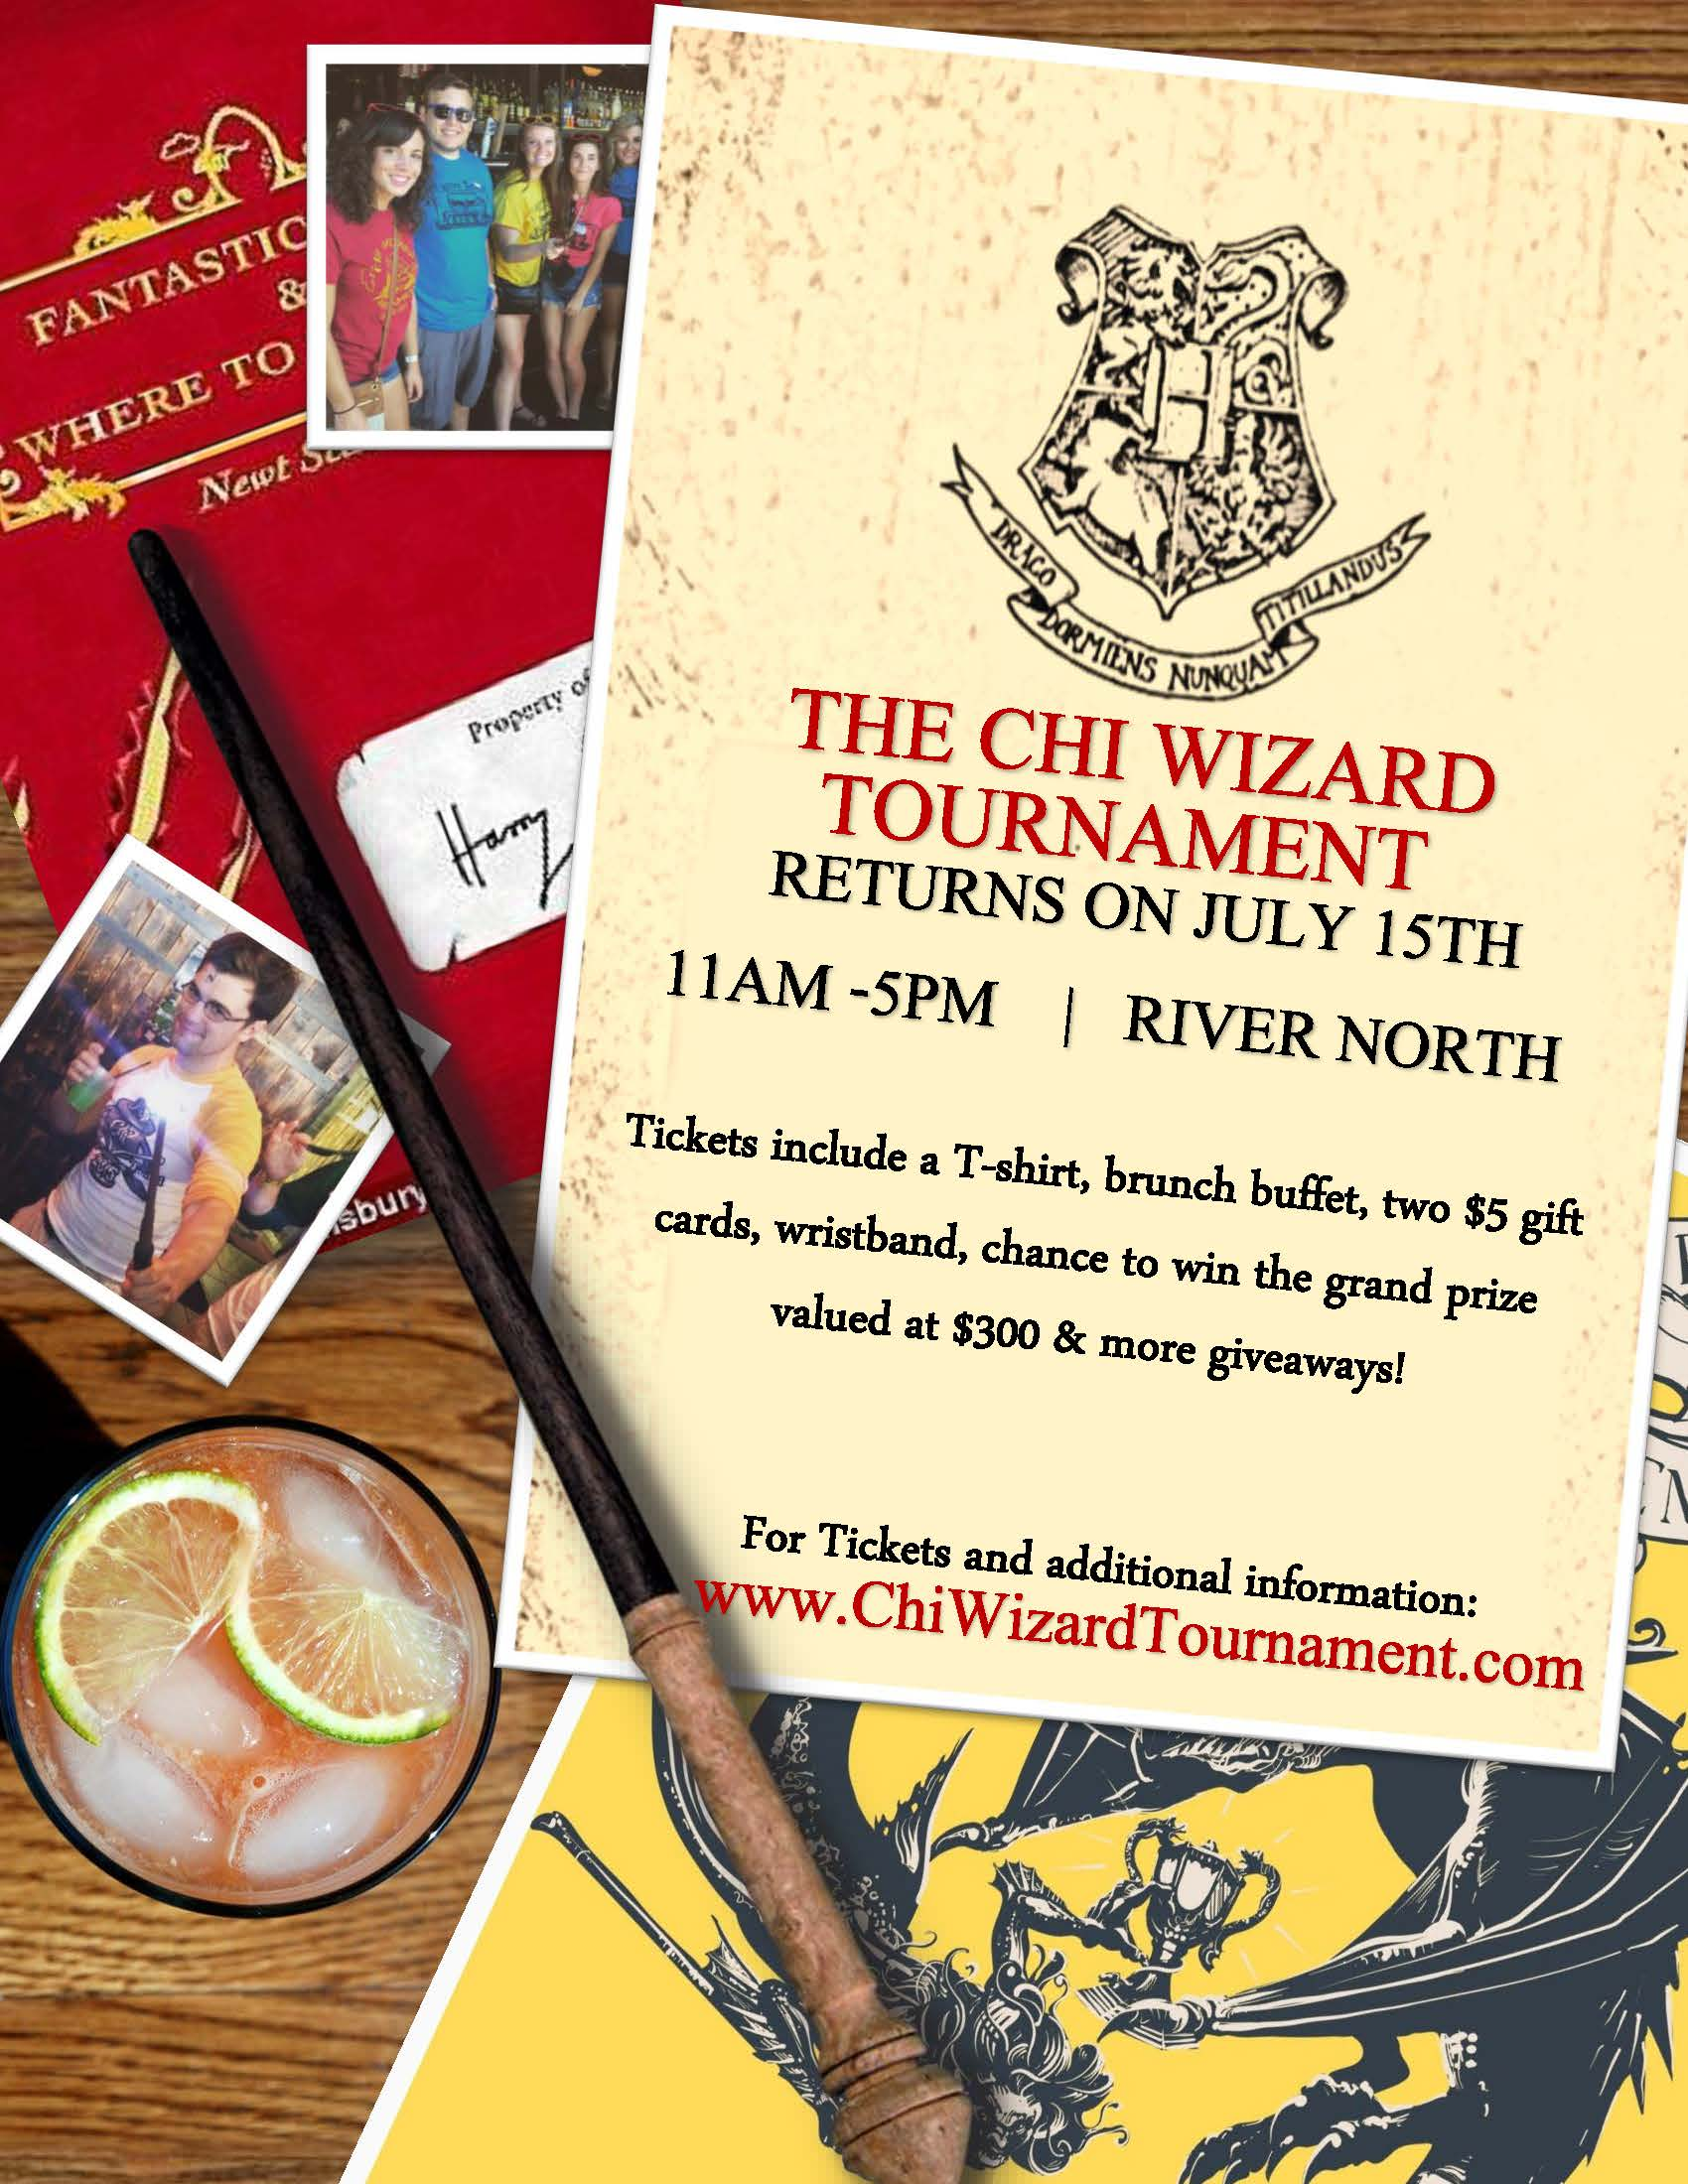 Chi Wizard Tournament - A Harry Potter Bar Crawl in Chicago - Tickets include a T-Shirt, Brunch Buffet, Two $5 Gift Cards To Use On The Crawl, Giveaways & MORE!